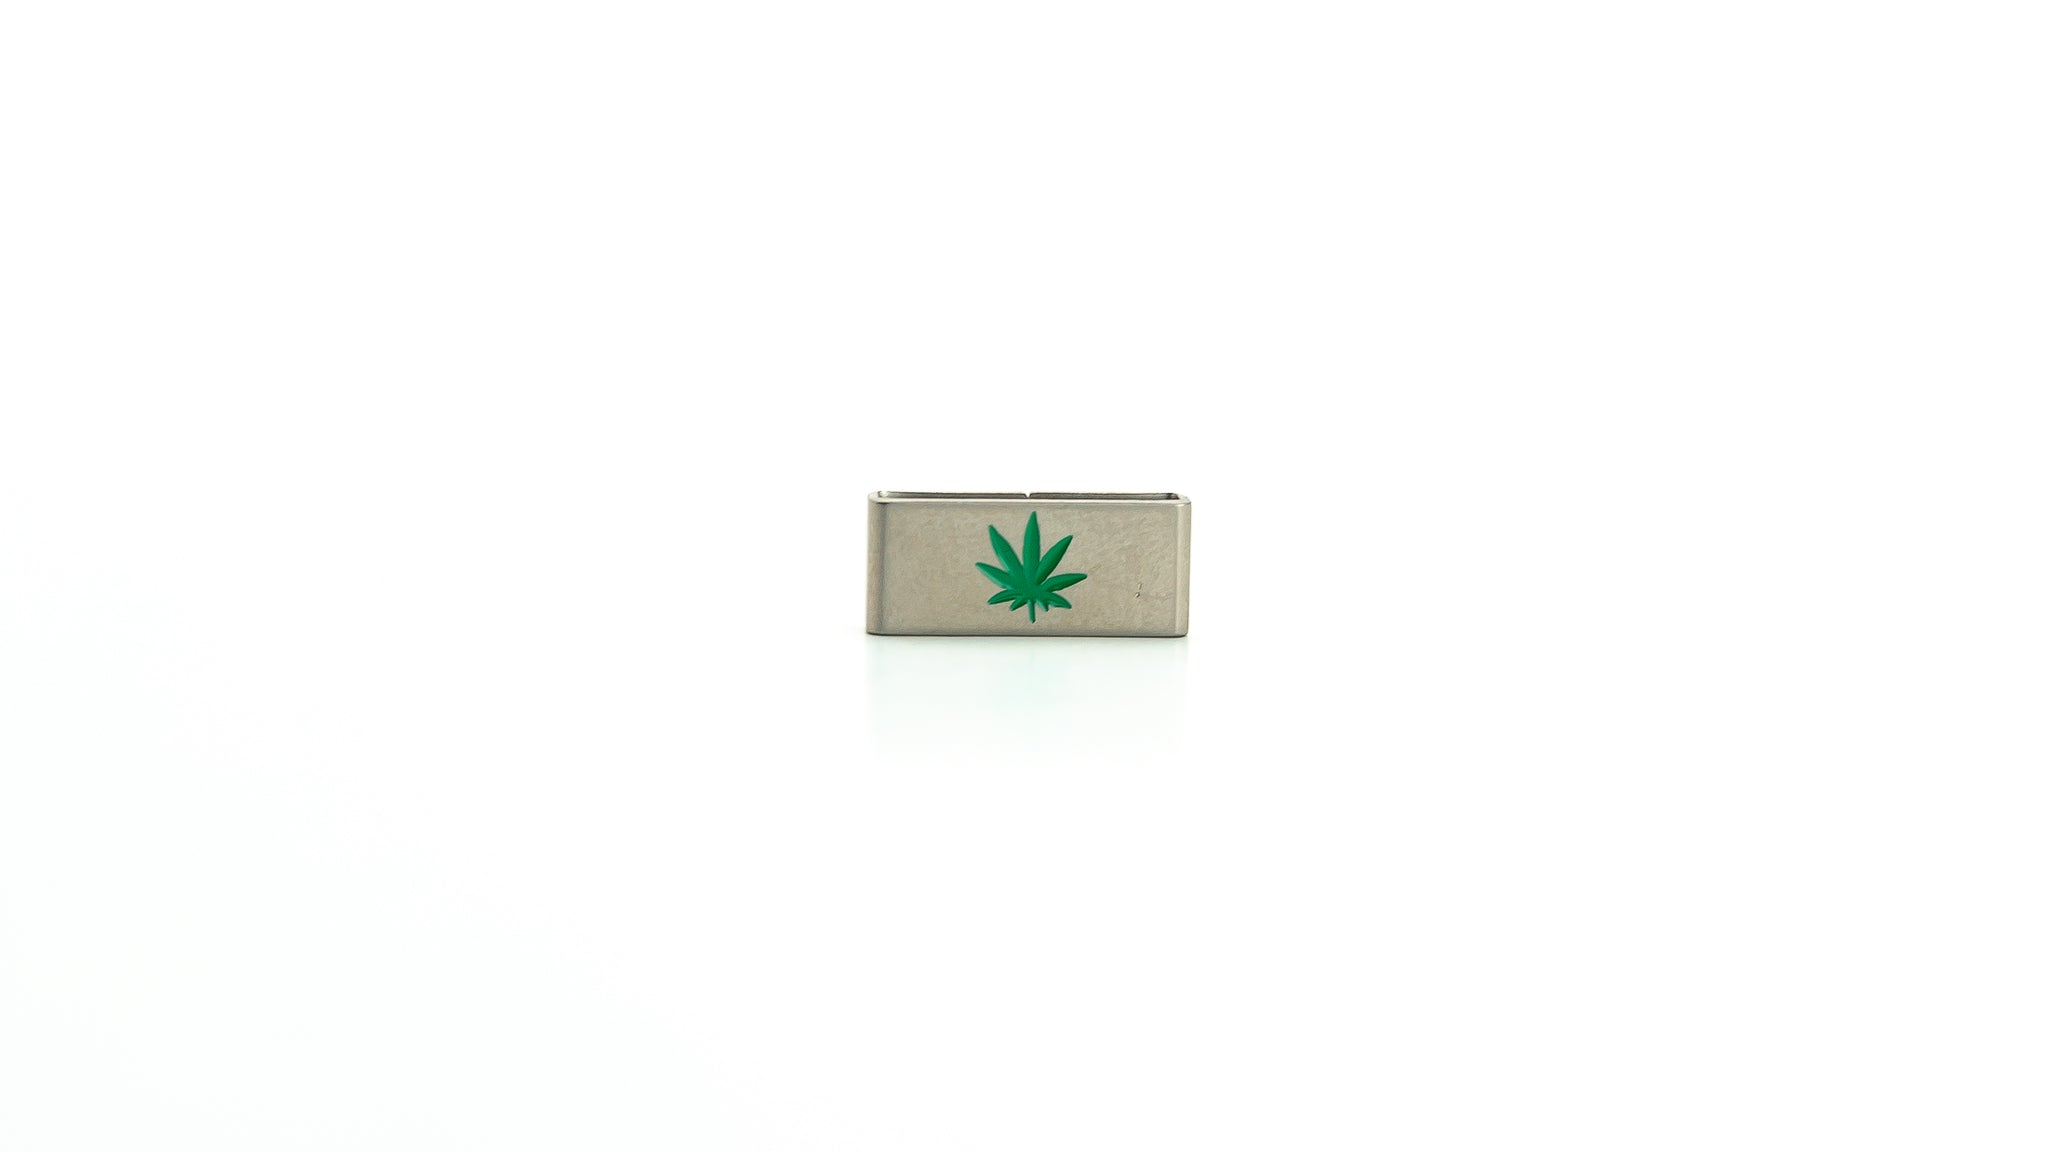 Weed marijuana stainless steel tag. Radtagz collectible charms. Weed accessories.